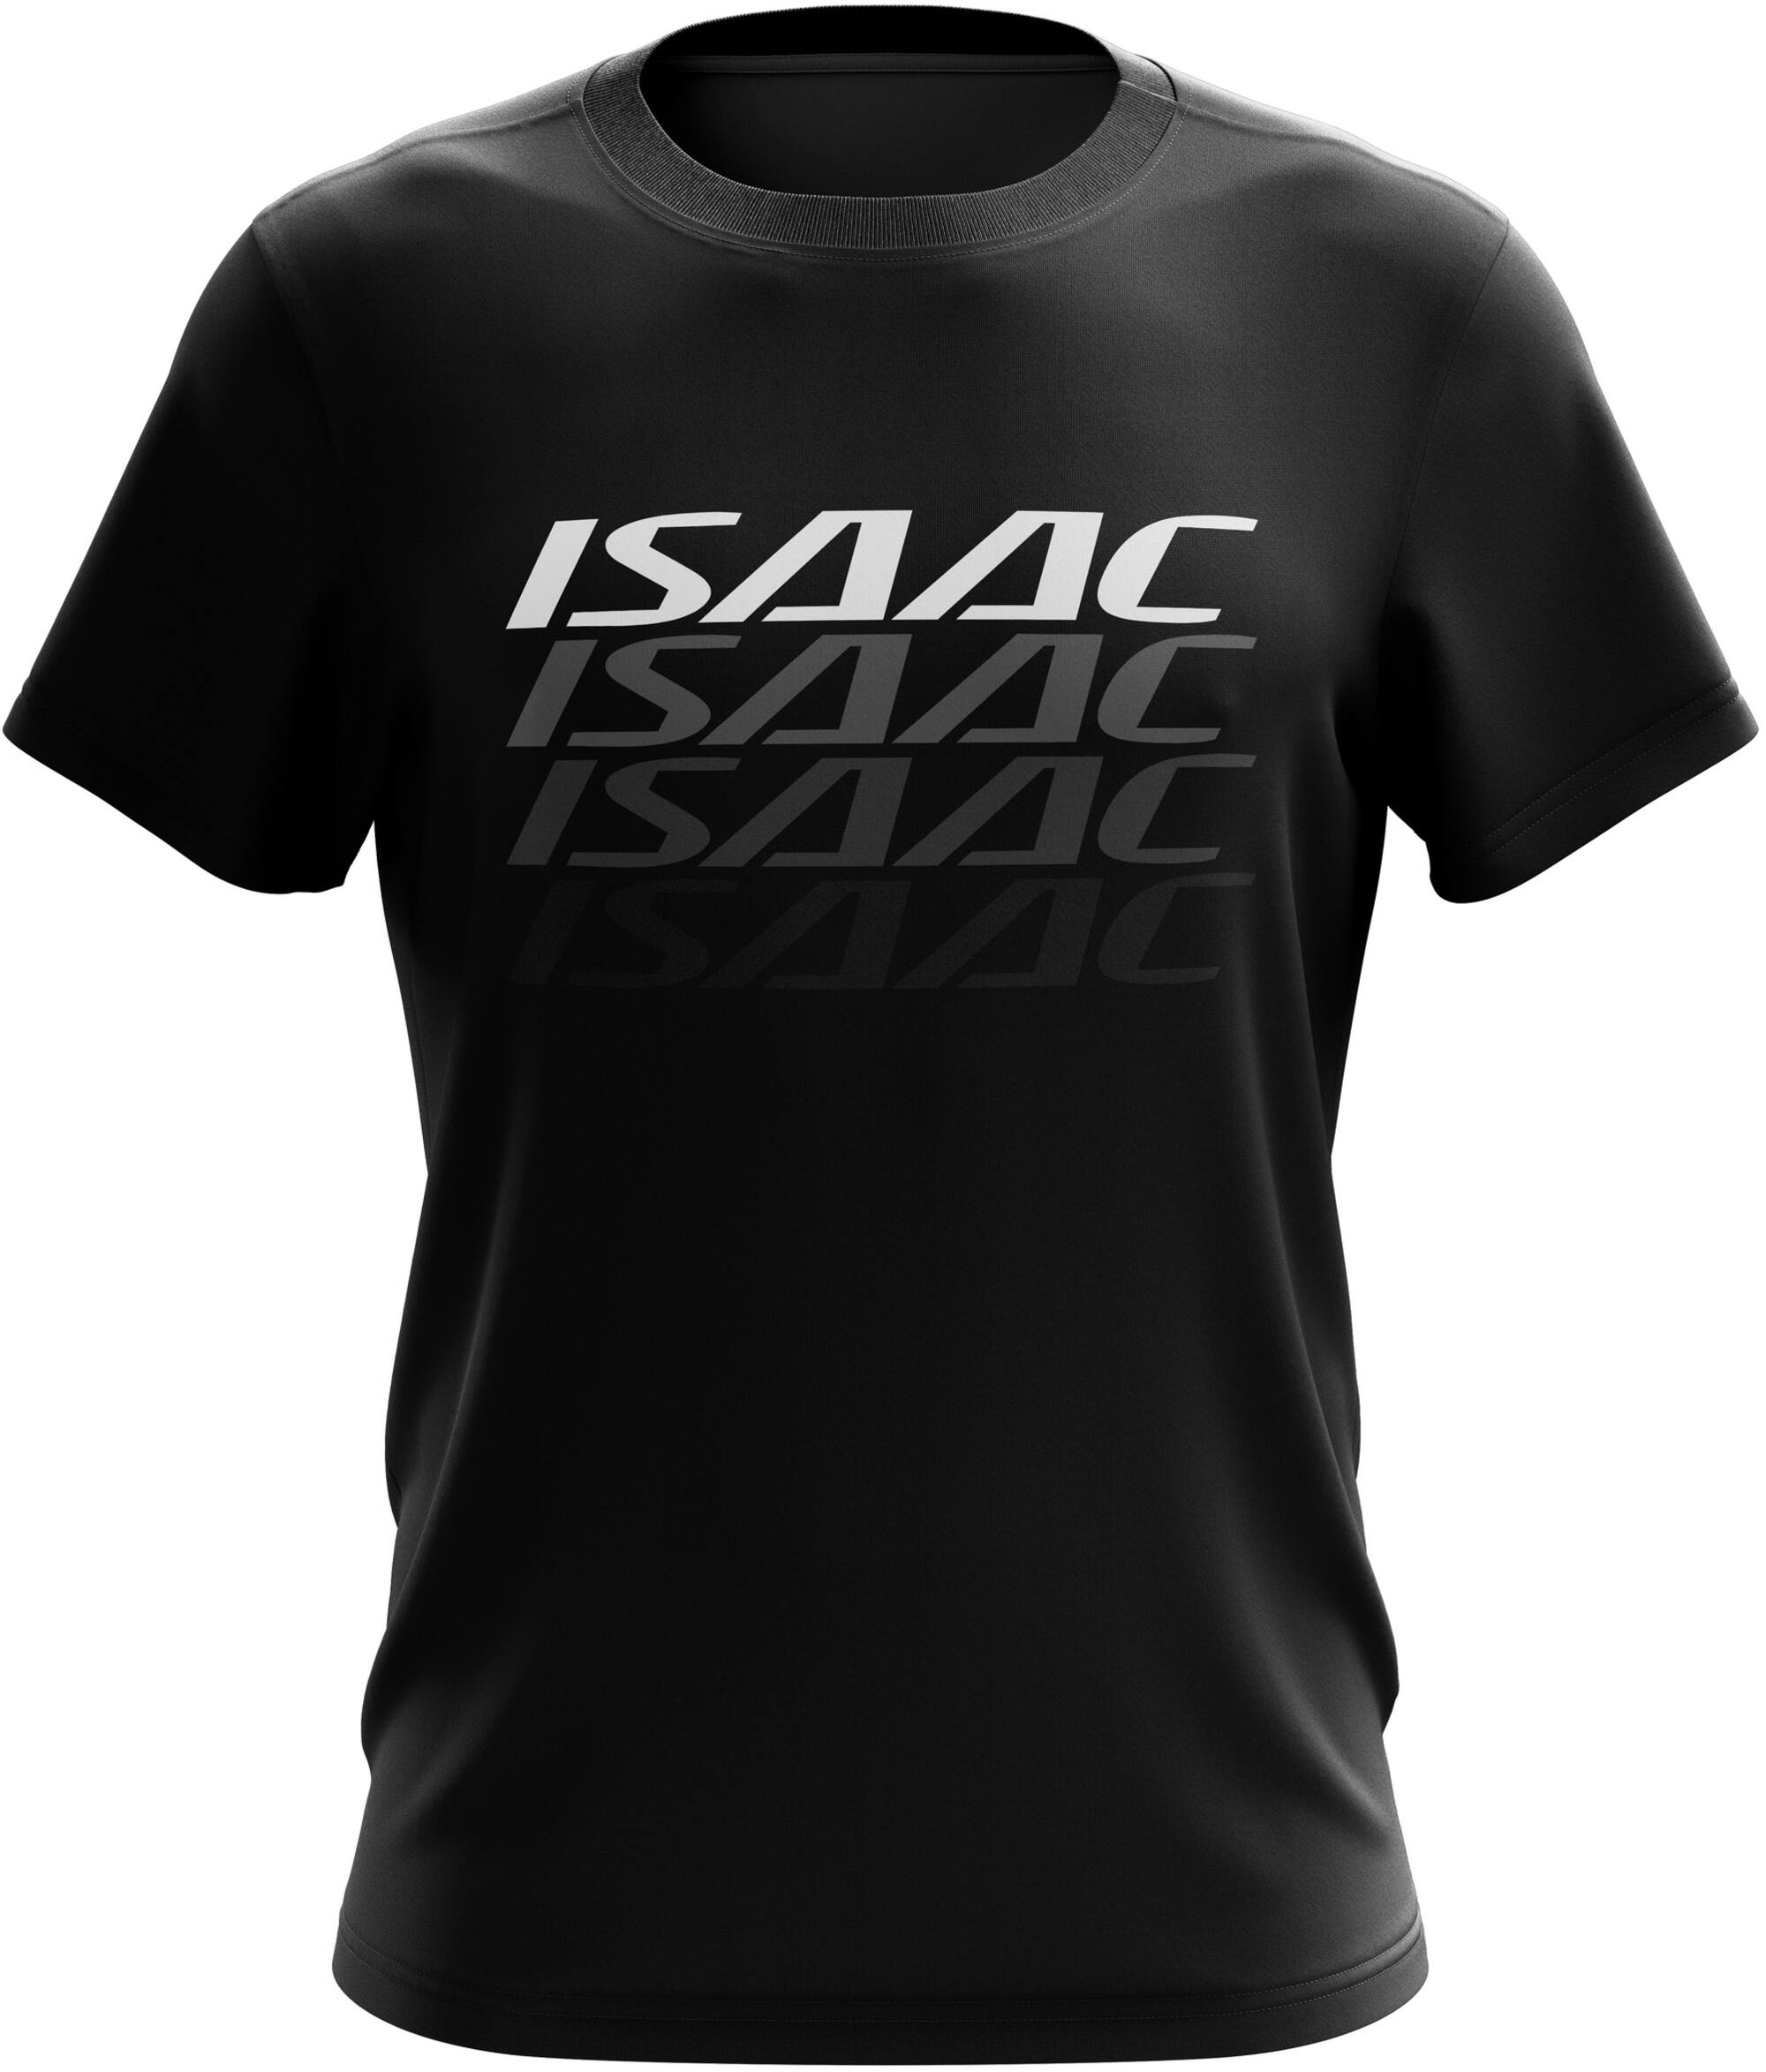 ISAAC T-SHIRT CASUAL SIZE XXL